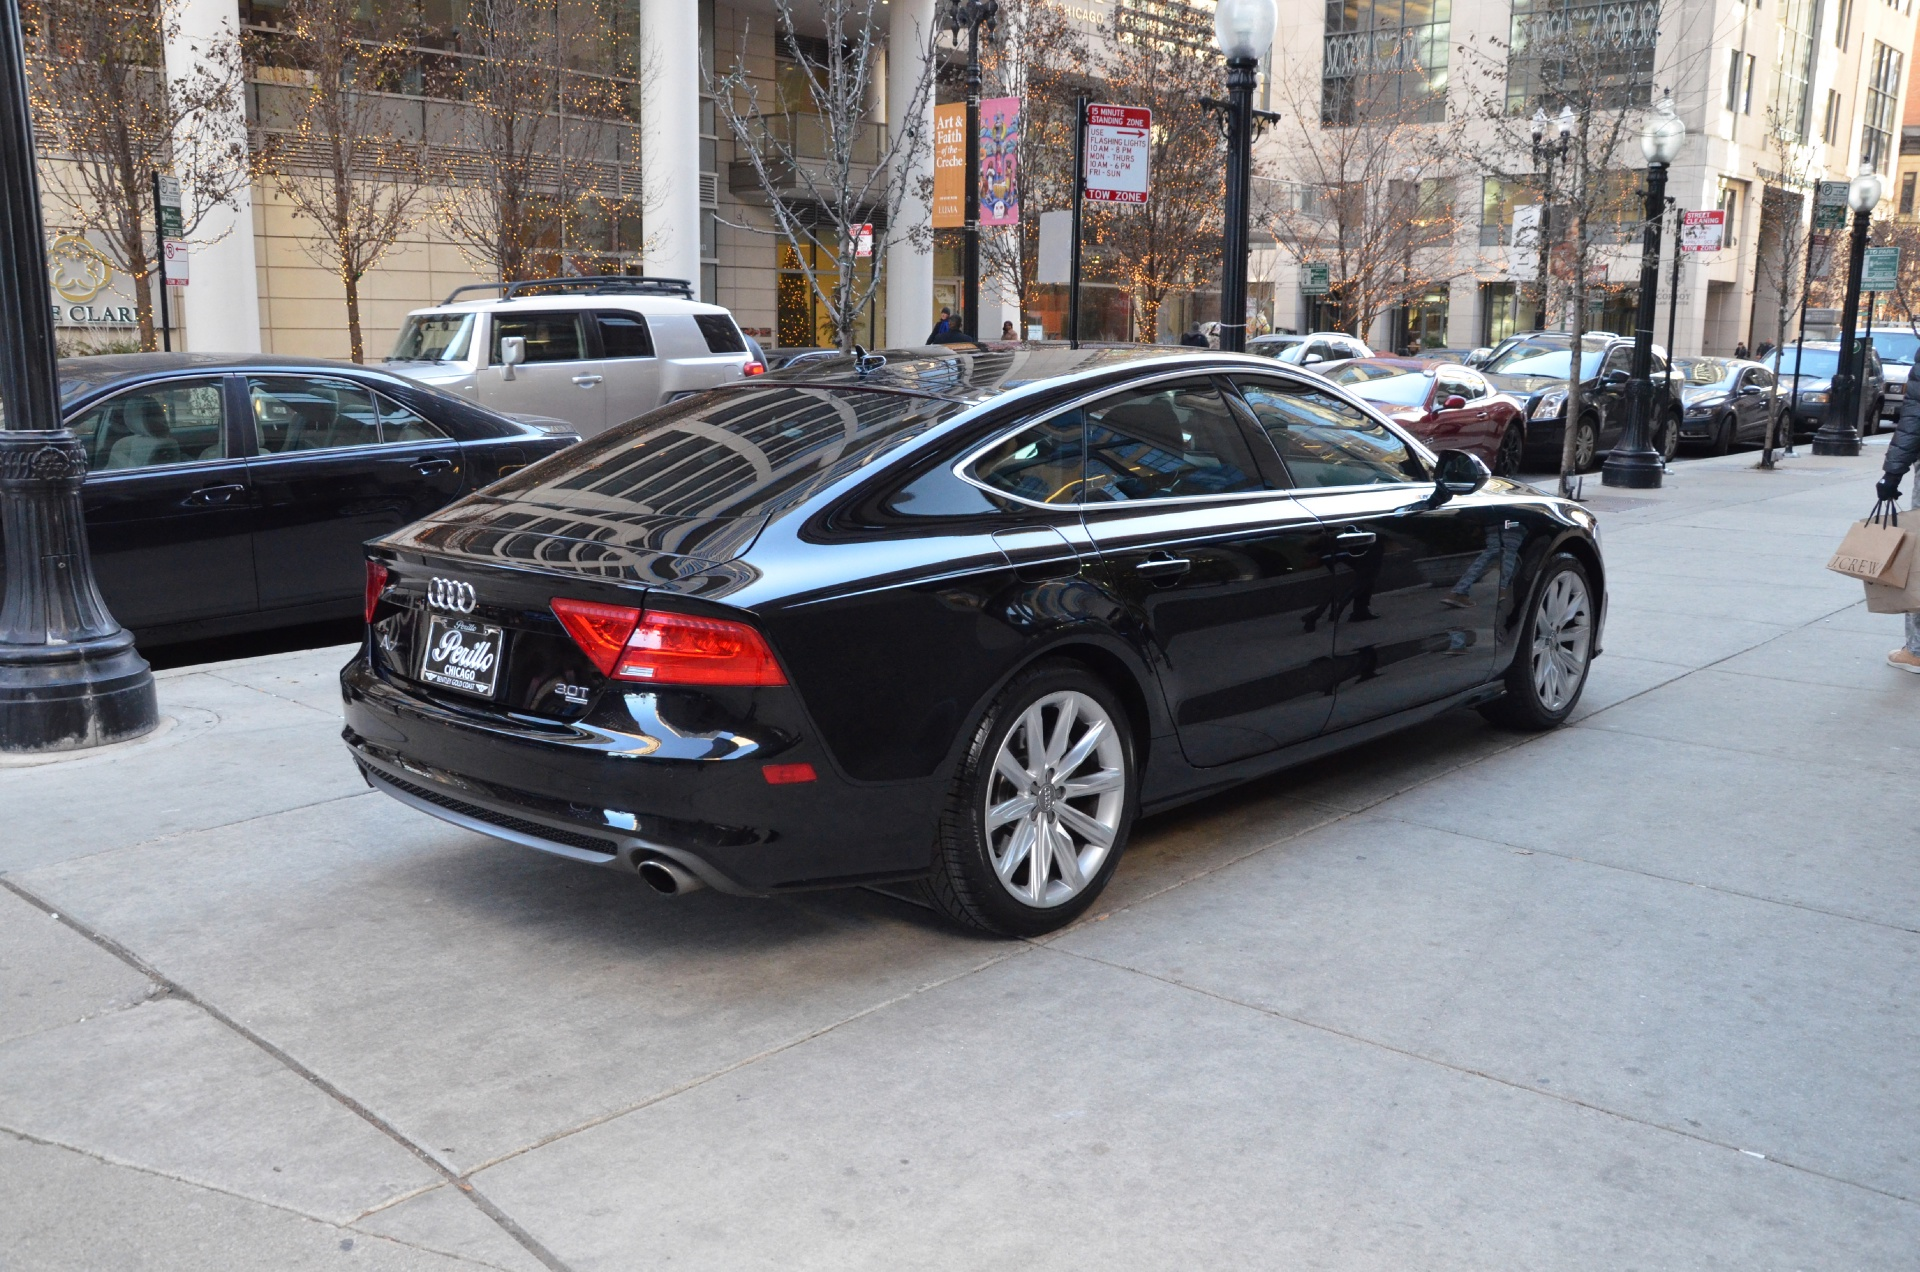 2012 audi a7 3 0t quattro prestige stock gc1574 for sale near chicago il il audi dealer. Black Bedroom Furniture Sets. Home Design Ideas